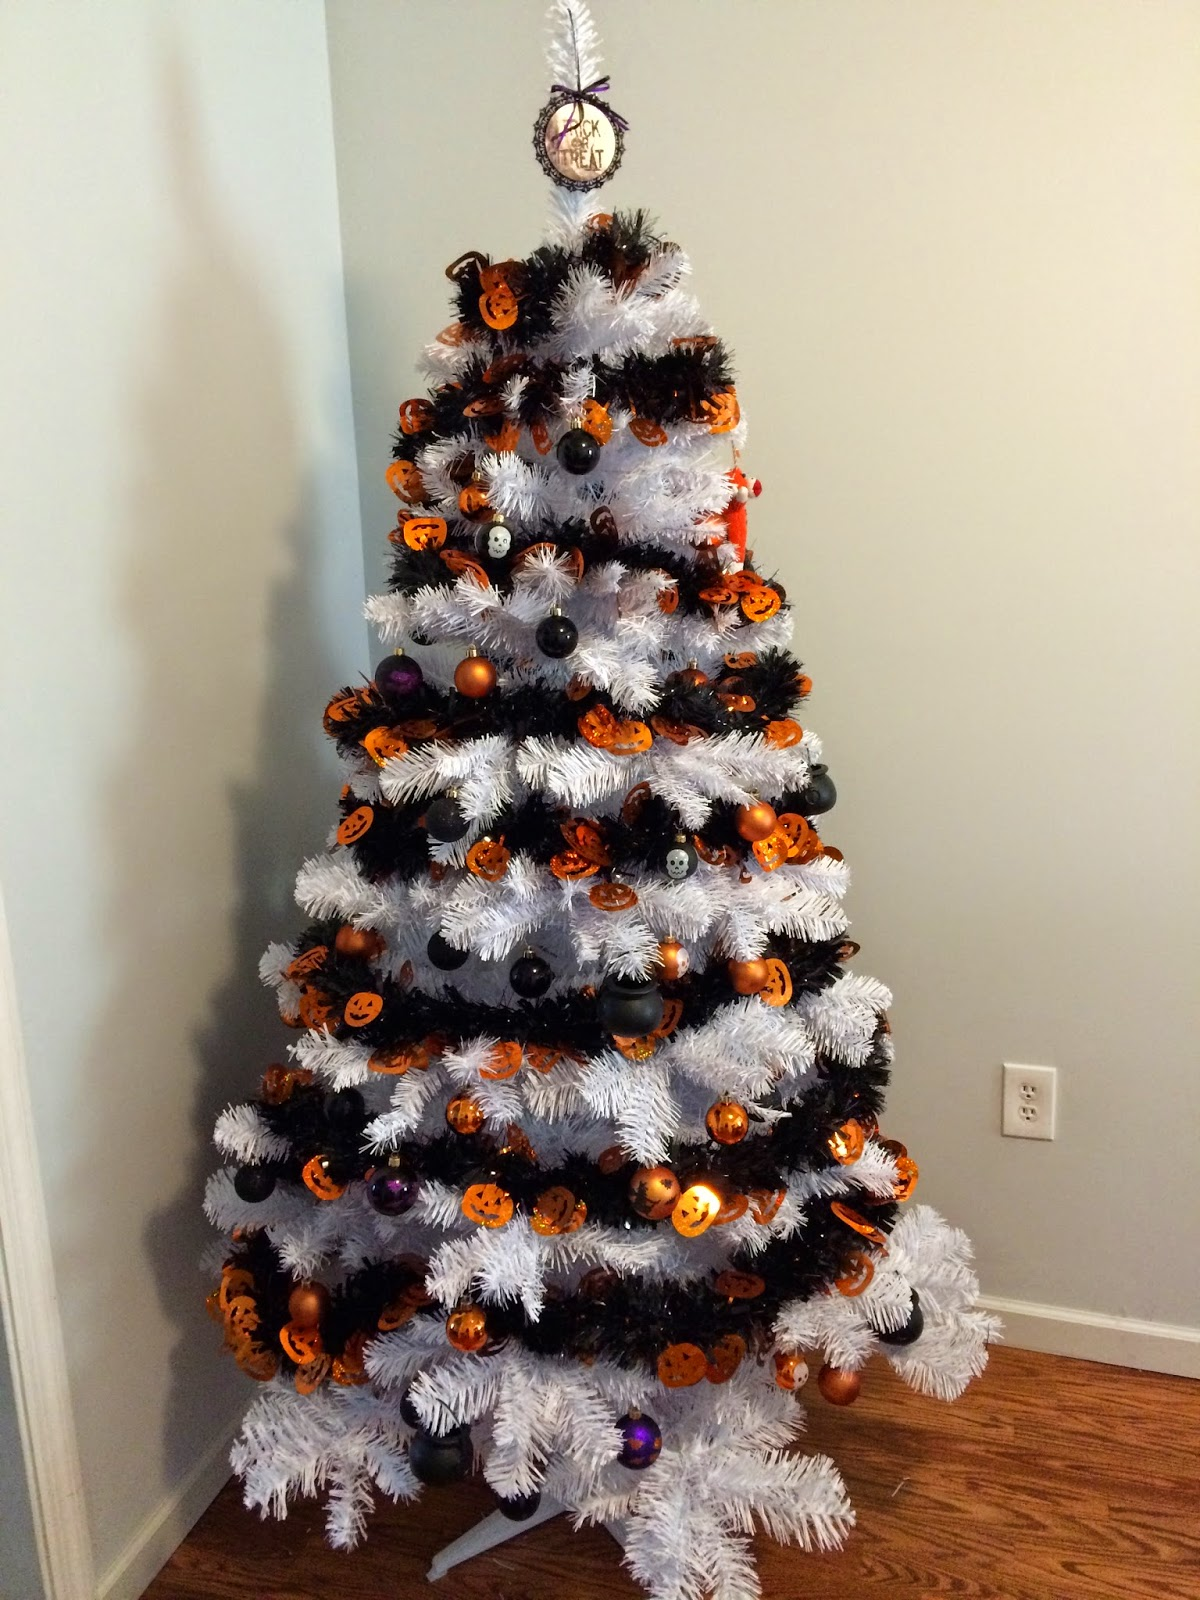 Halloween tree ornaments - I M Going To Leave The Orange Ornaments On There For November And Buy A Big Container Of Brown Ones To Put On There For A Thanksgiving Fall Look